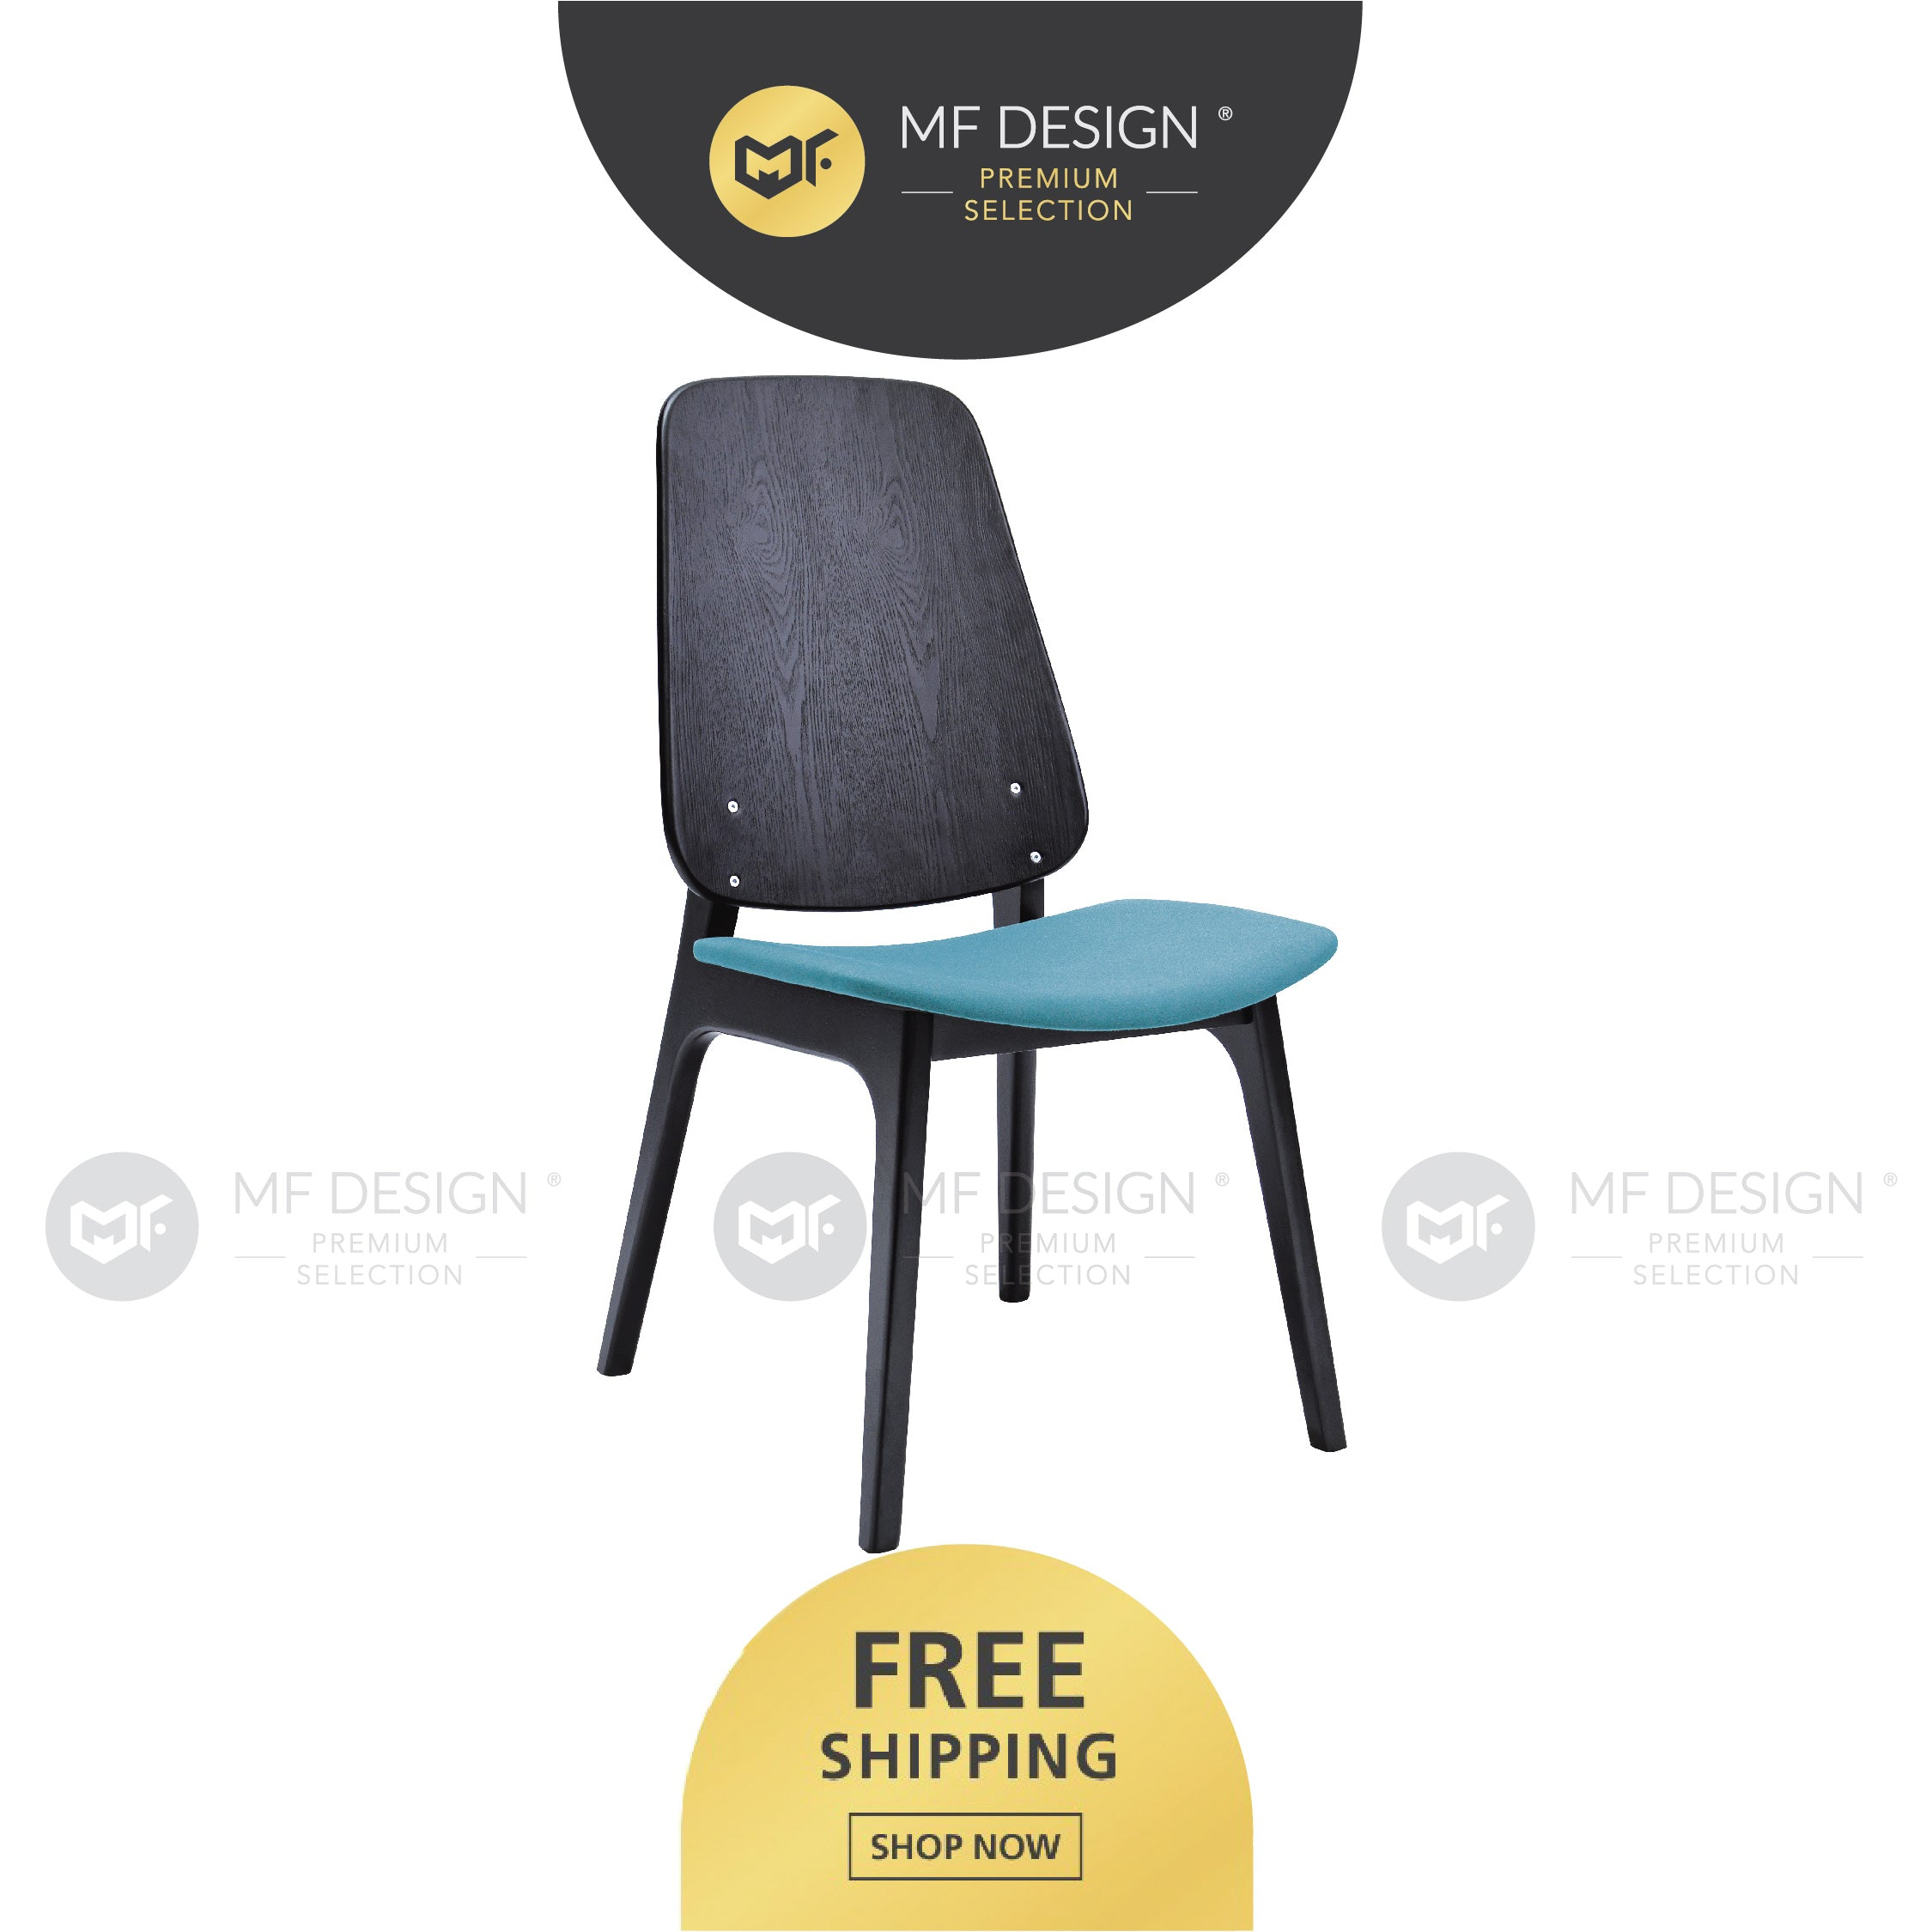 MFD Premium Marco Dining Chair / kerusi / chair